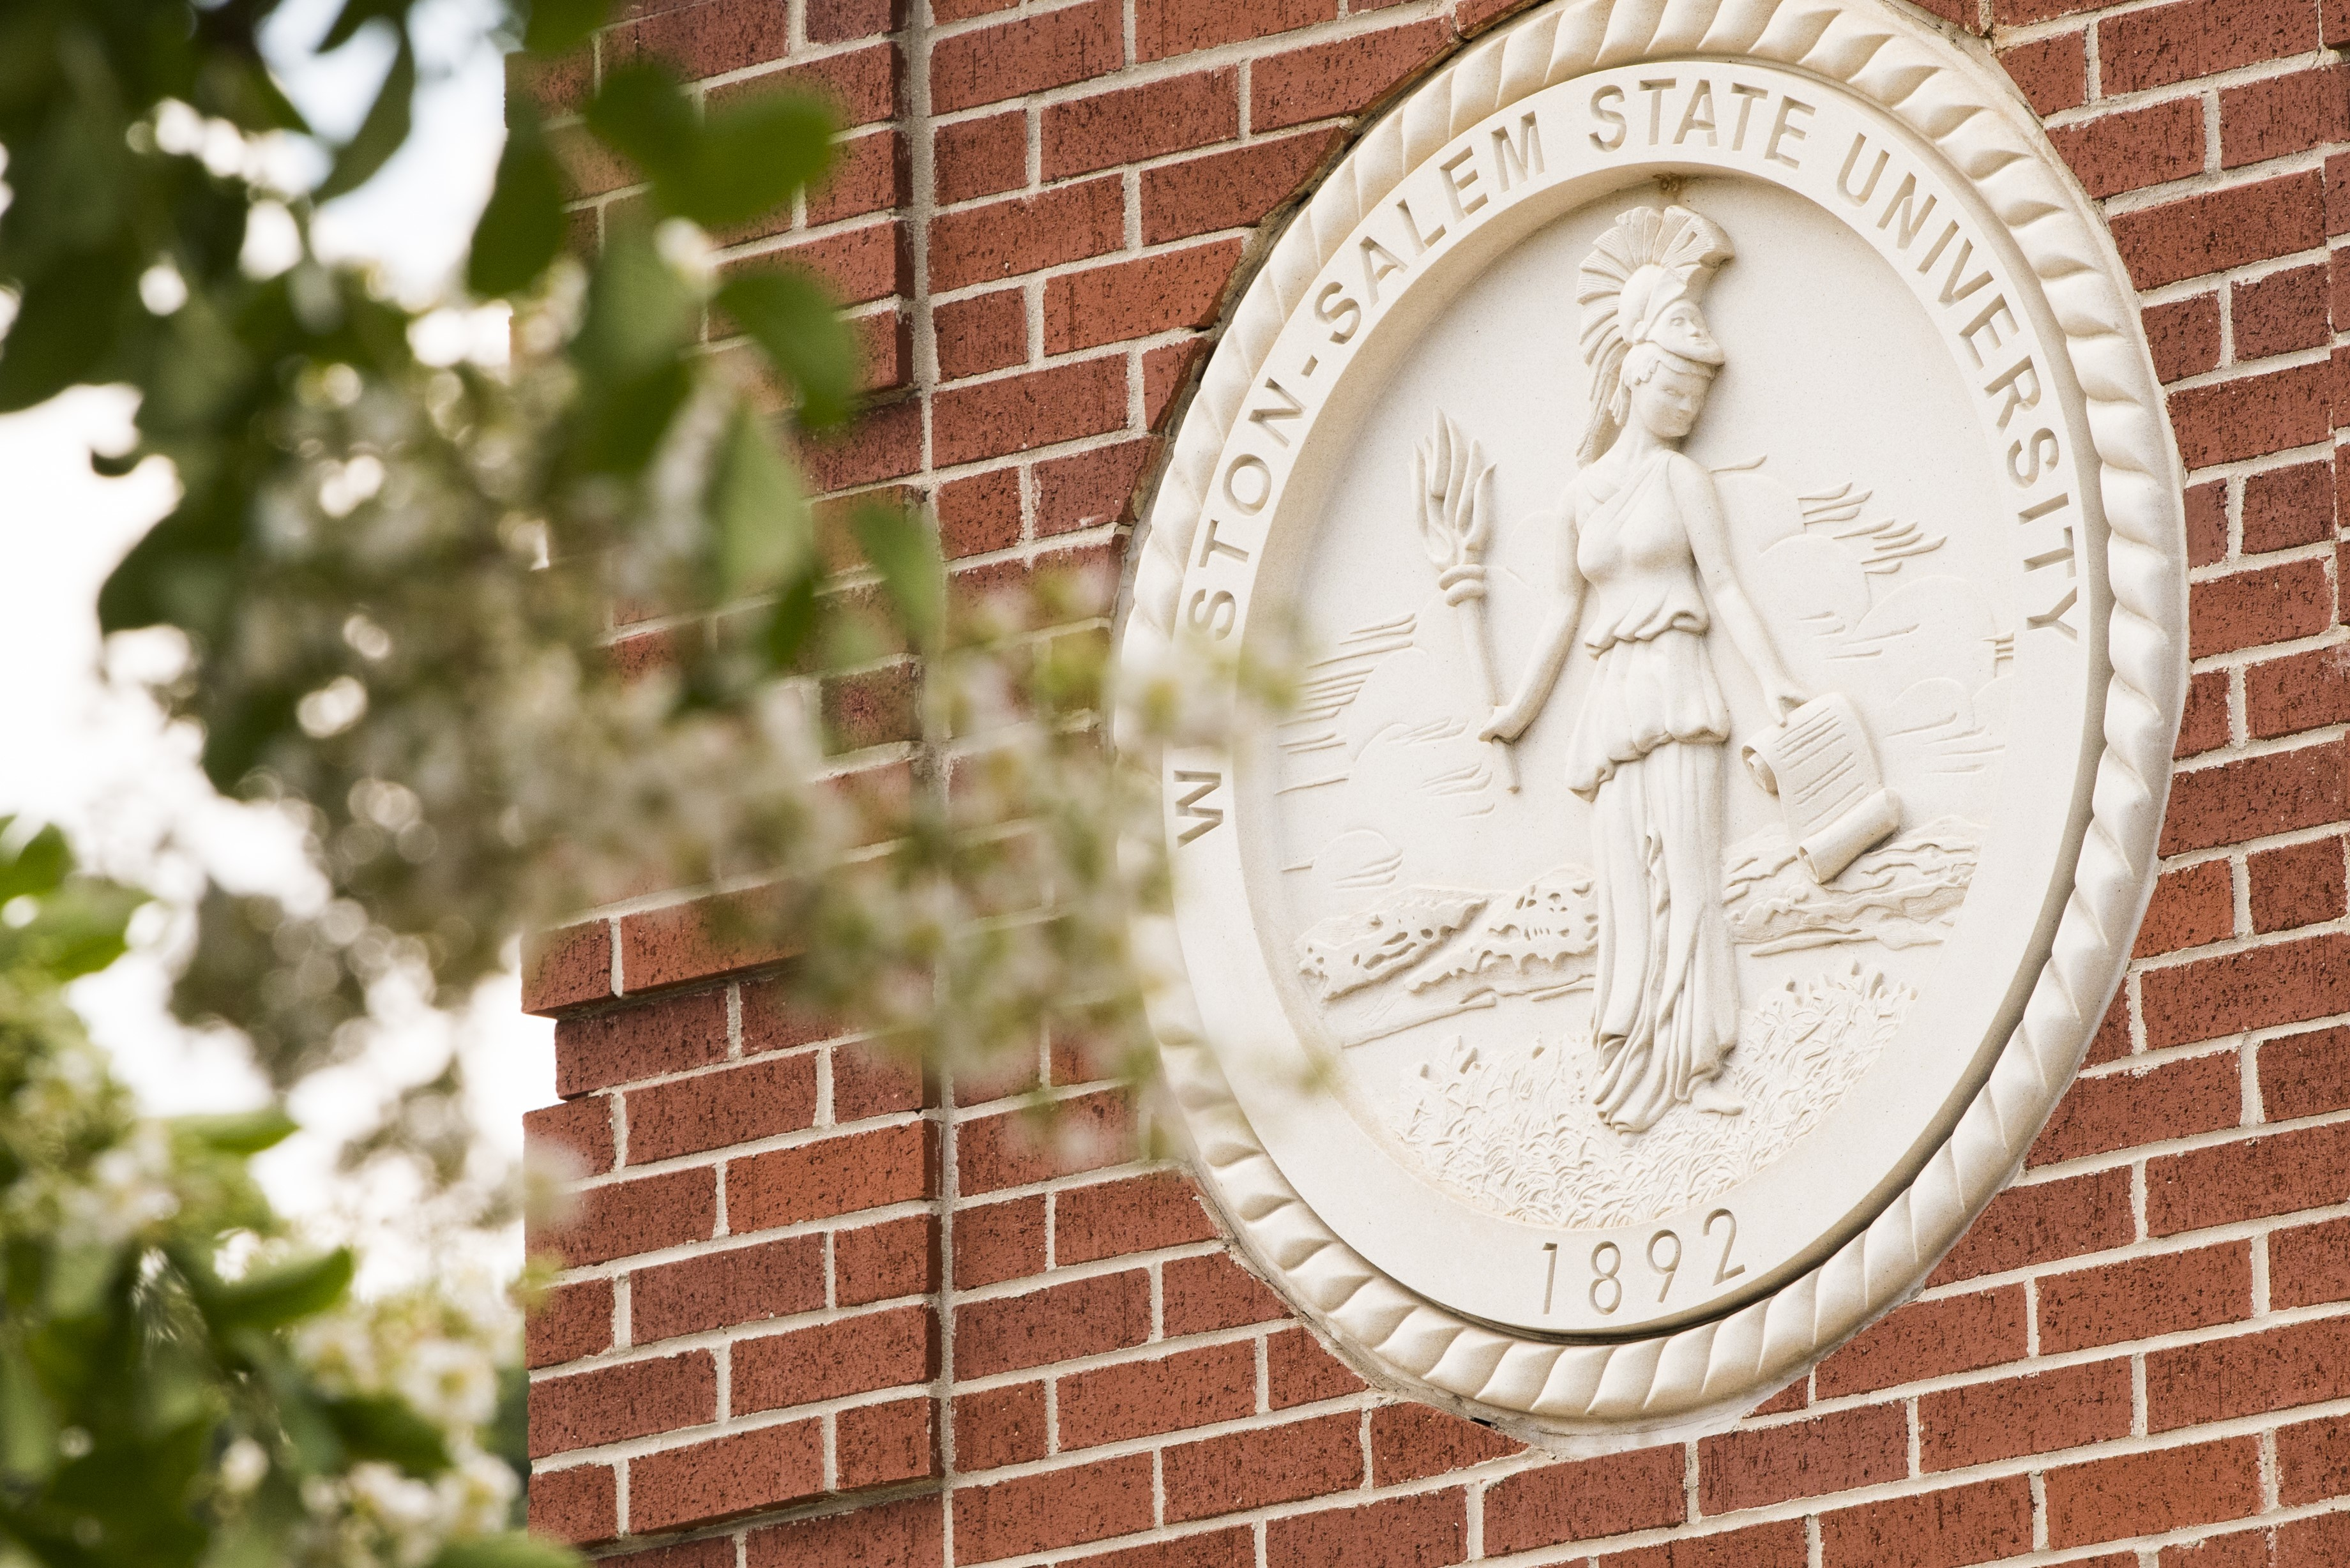 University Seal on the WSSU Clock Tower